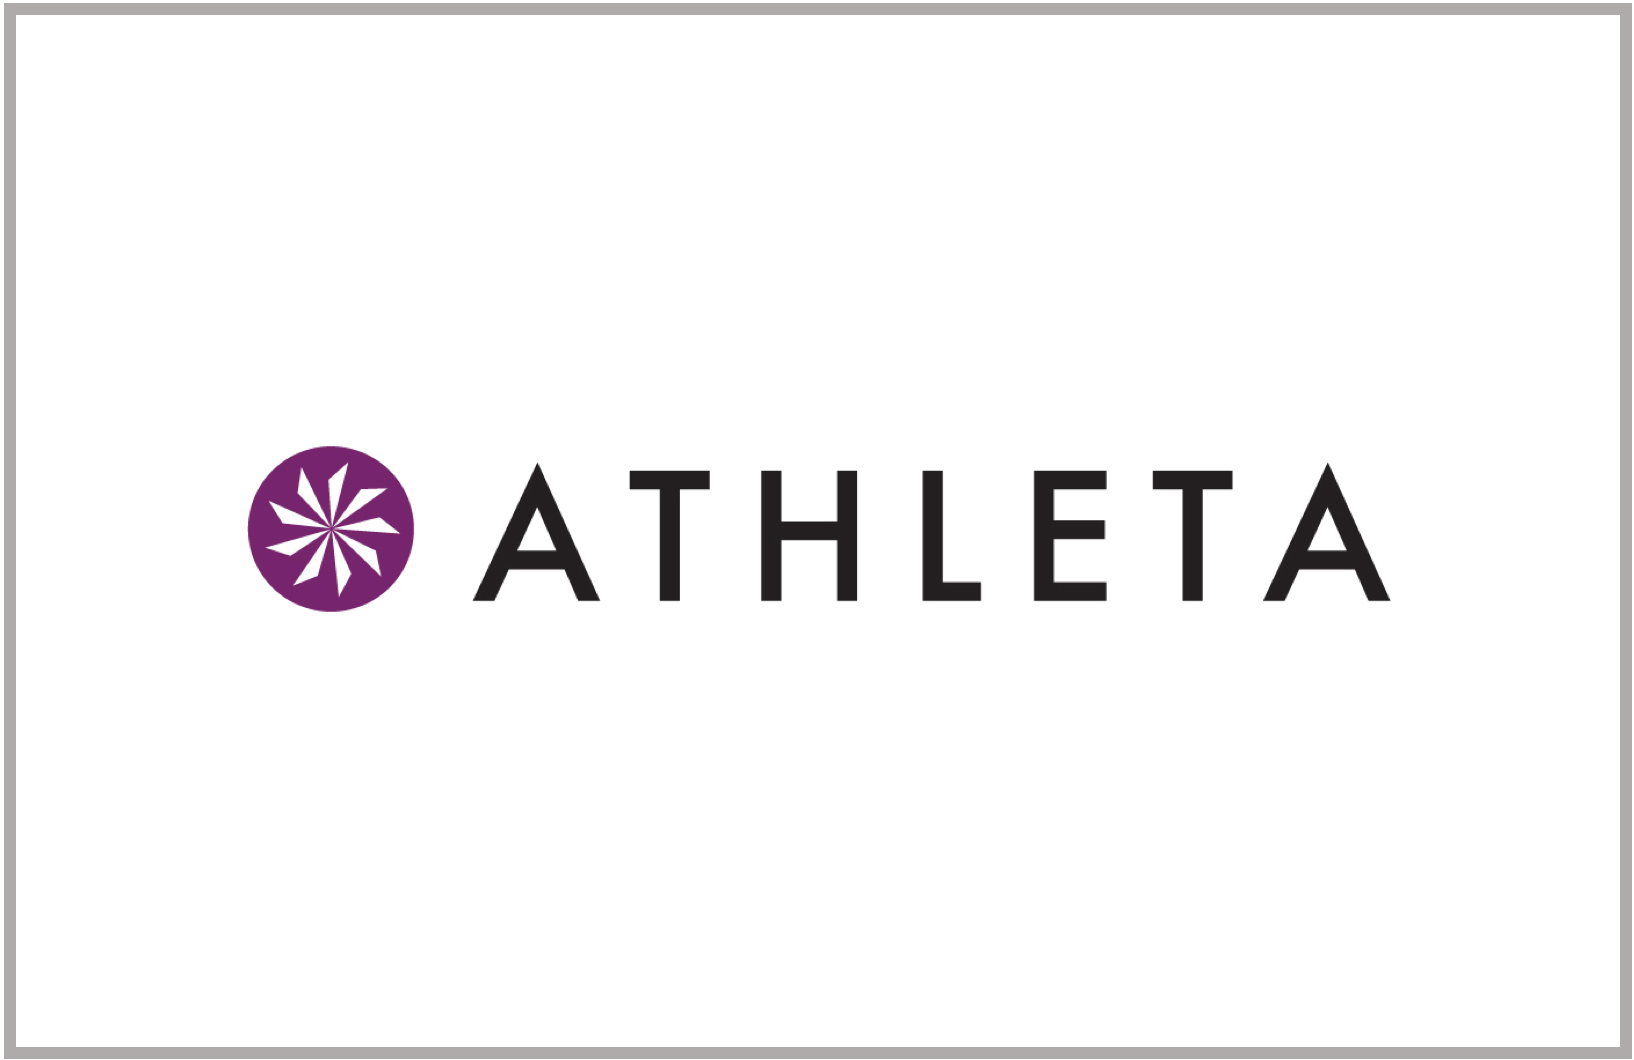 Athleta - Gallery Block.png